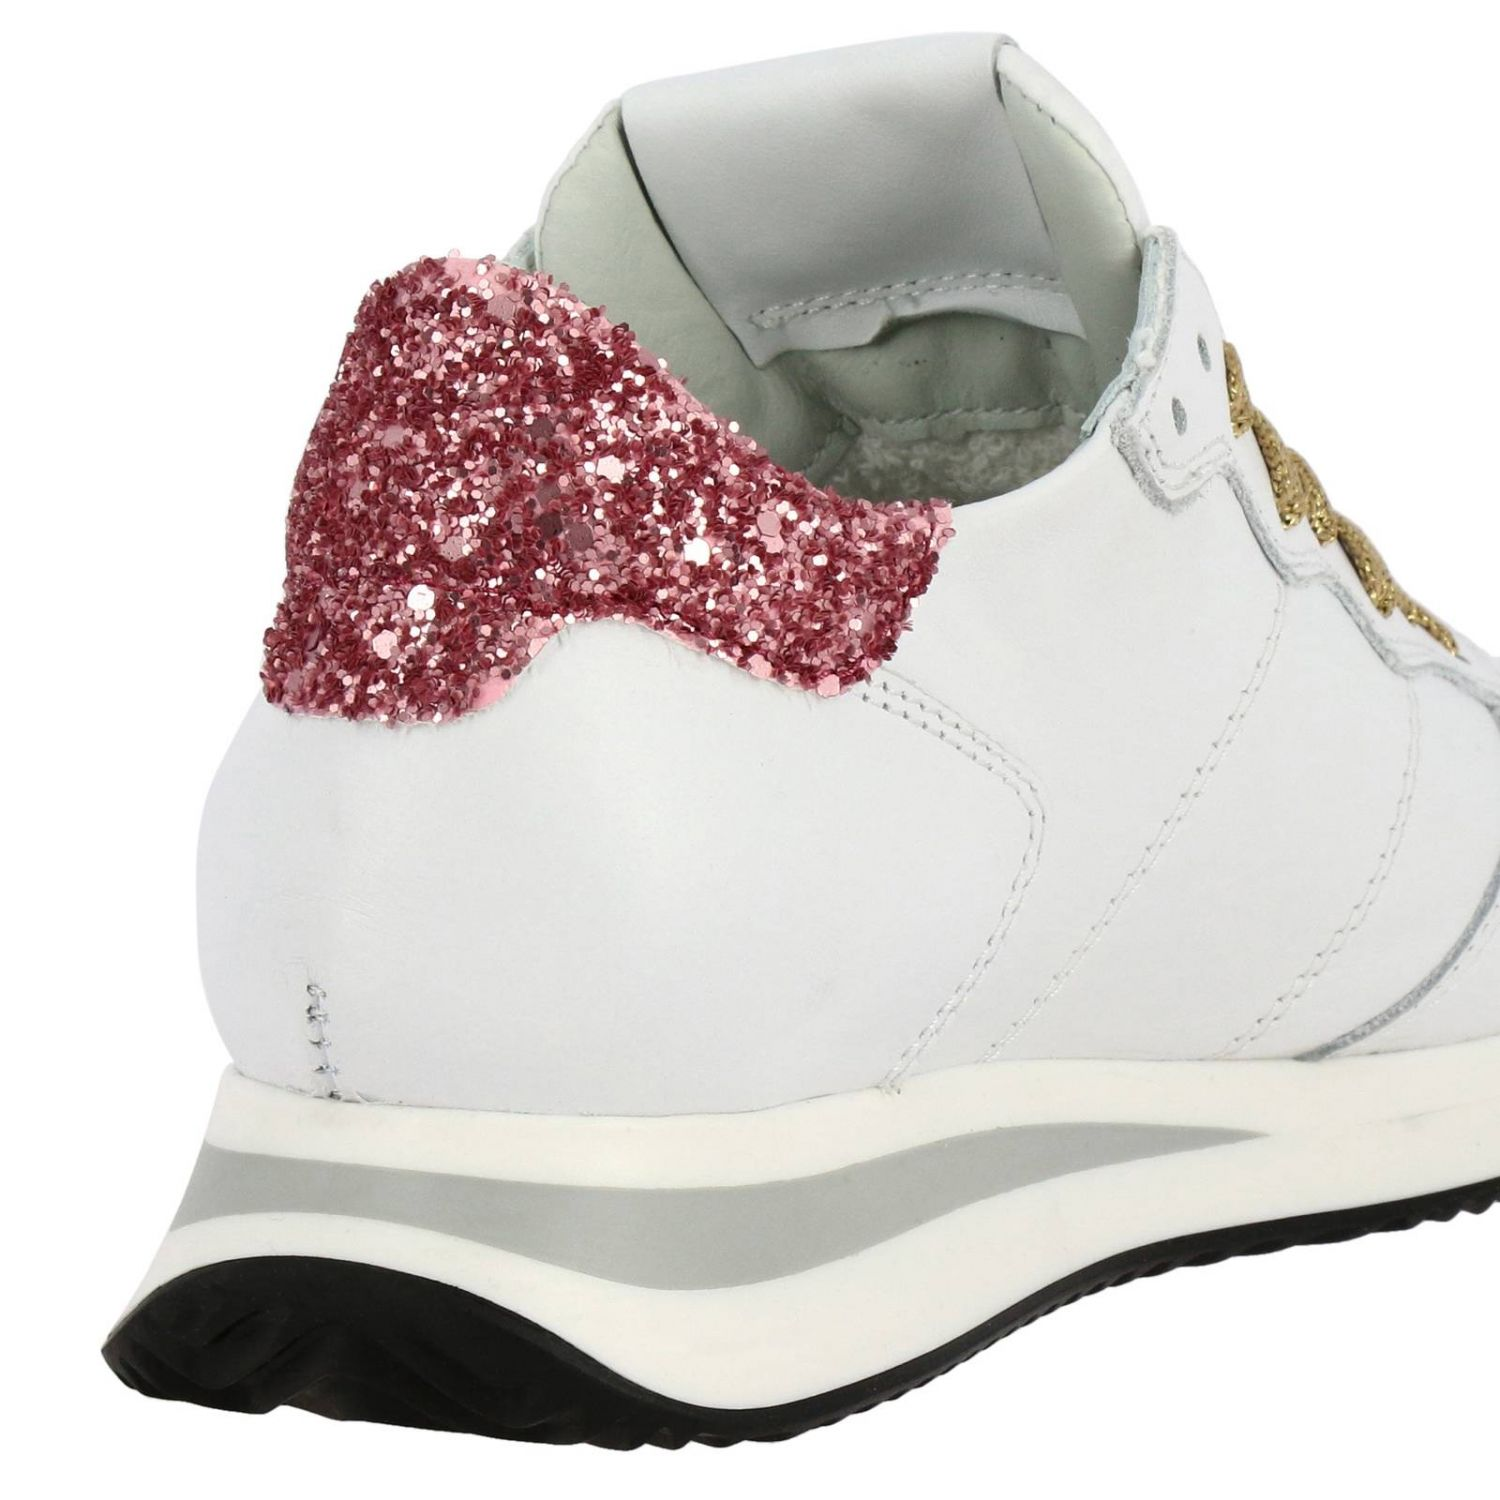 Shoes women Philippe Model white 4